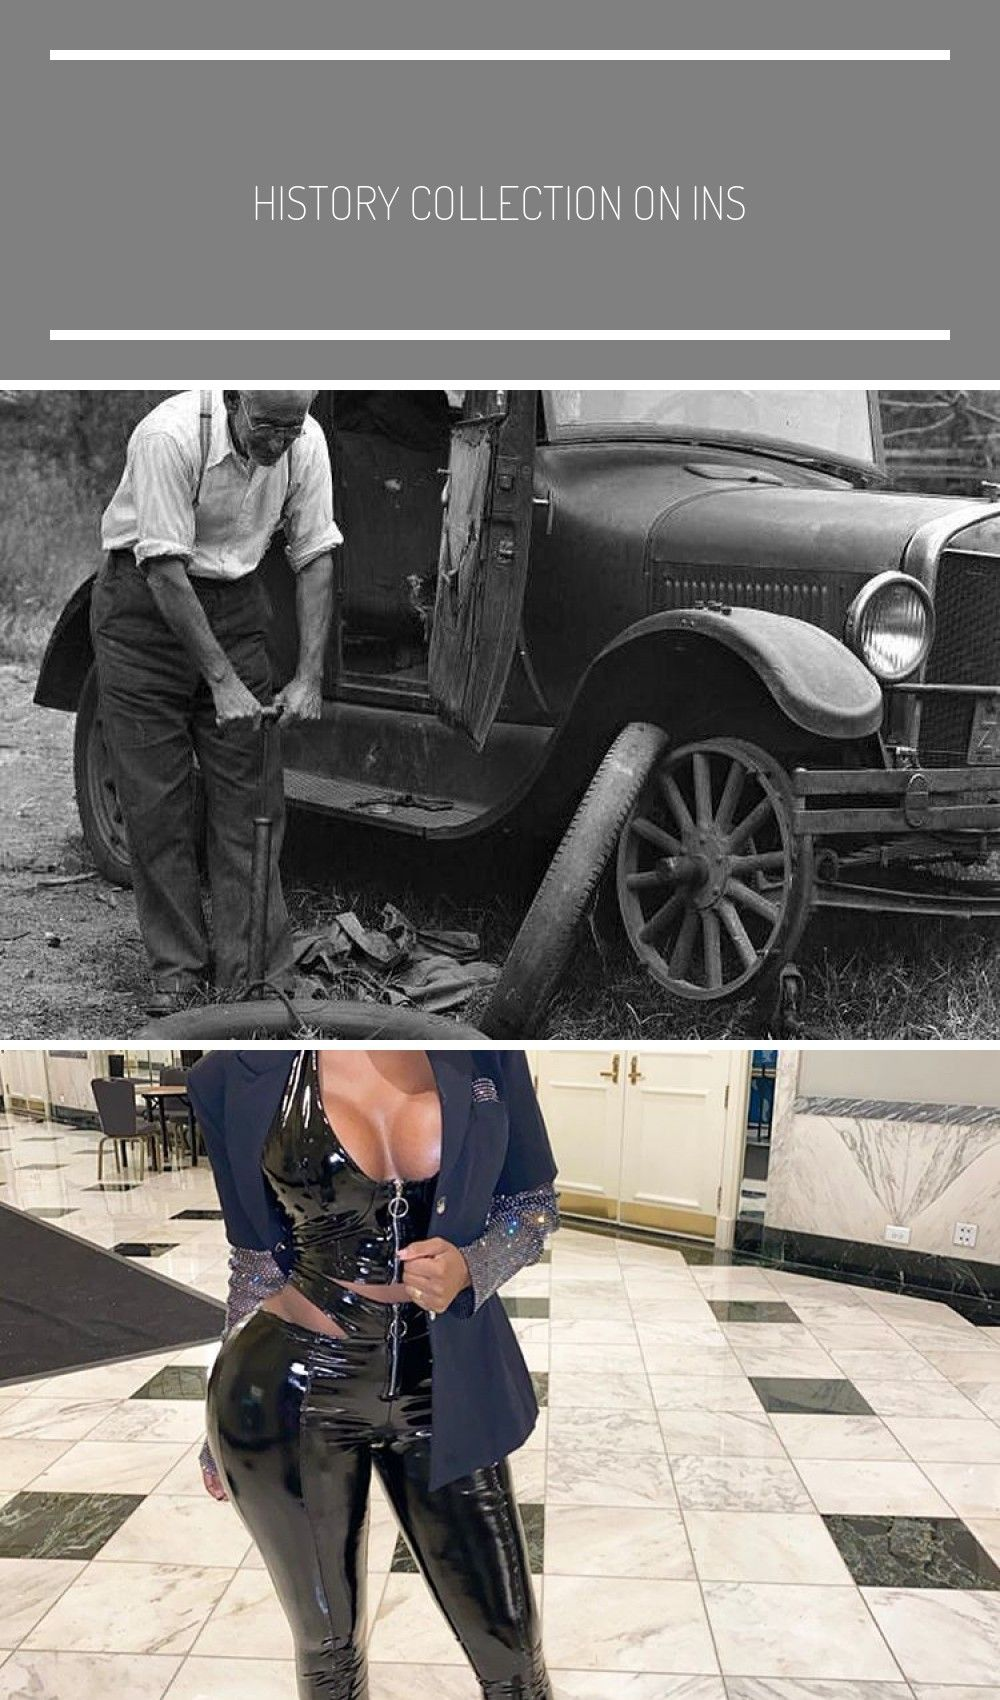 "History Collection on Instagram: ""A man changes a tire on his Model T Coupe, 1927. Follow @histor"